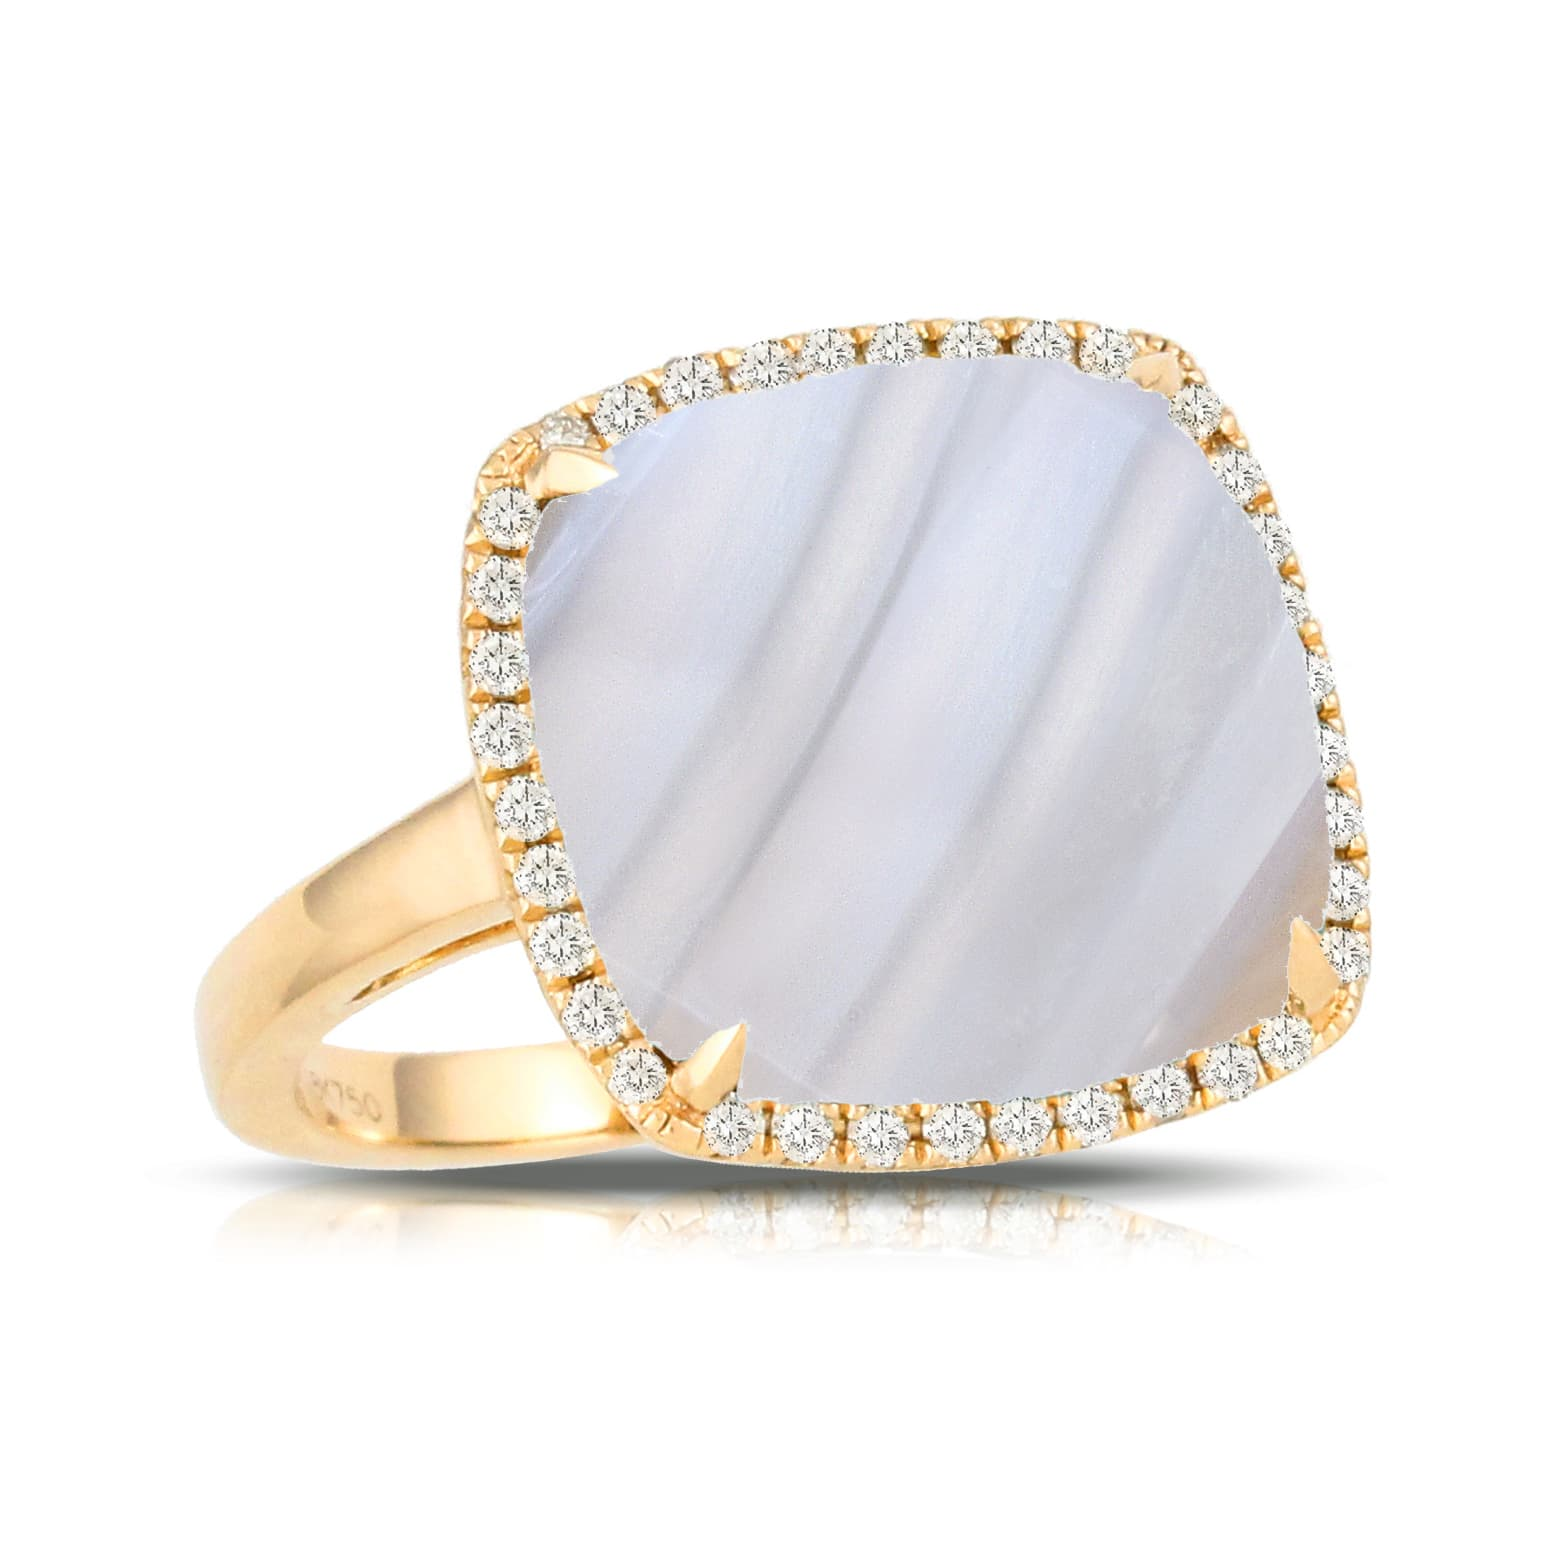 18K YELLOW GOLD DIAMOND RING WITH GREY AGATE